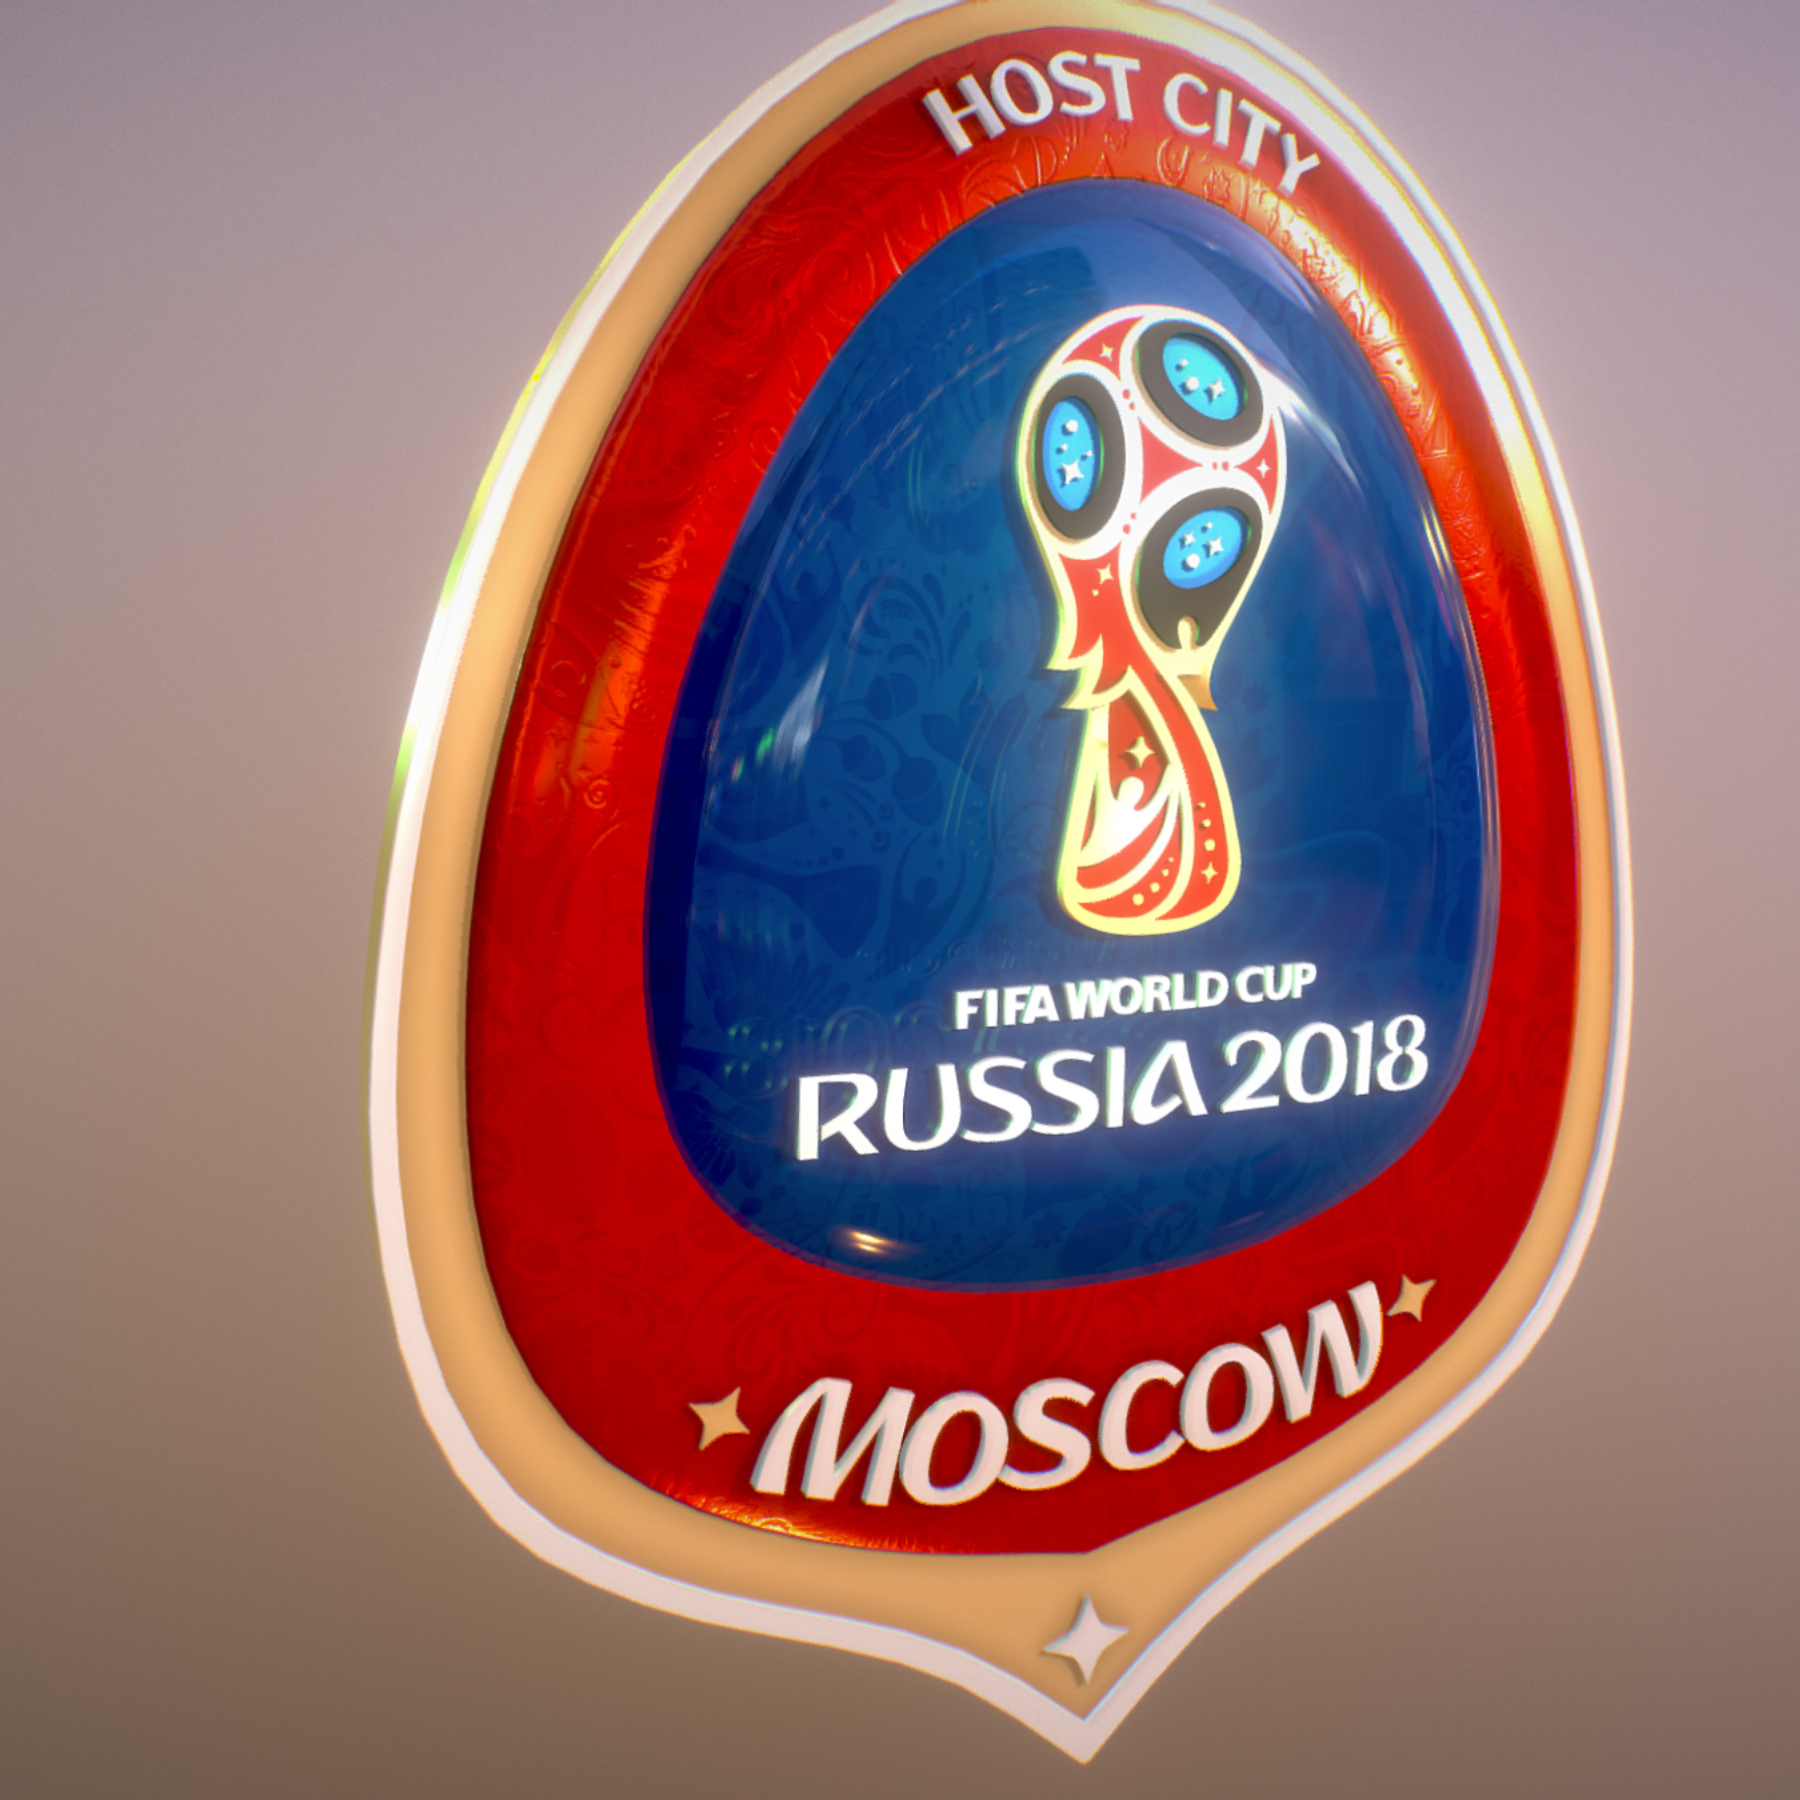 moscow host city world cup russia 2018 symbol 3d model max  fbx jpeg jpg ma mb obj 271659